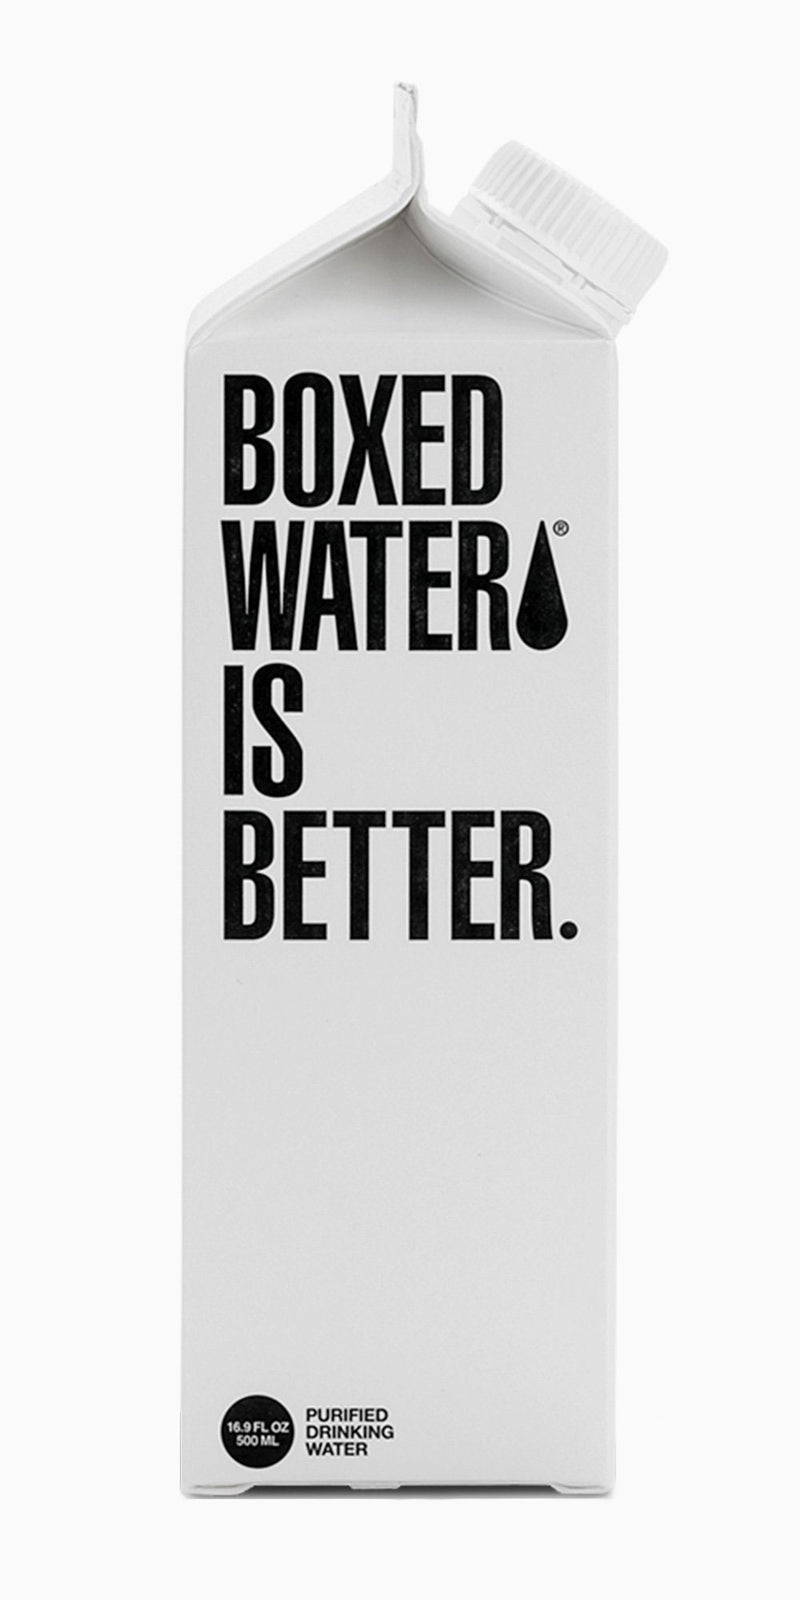 500ml Boxed Water